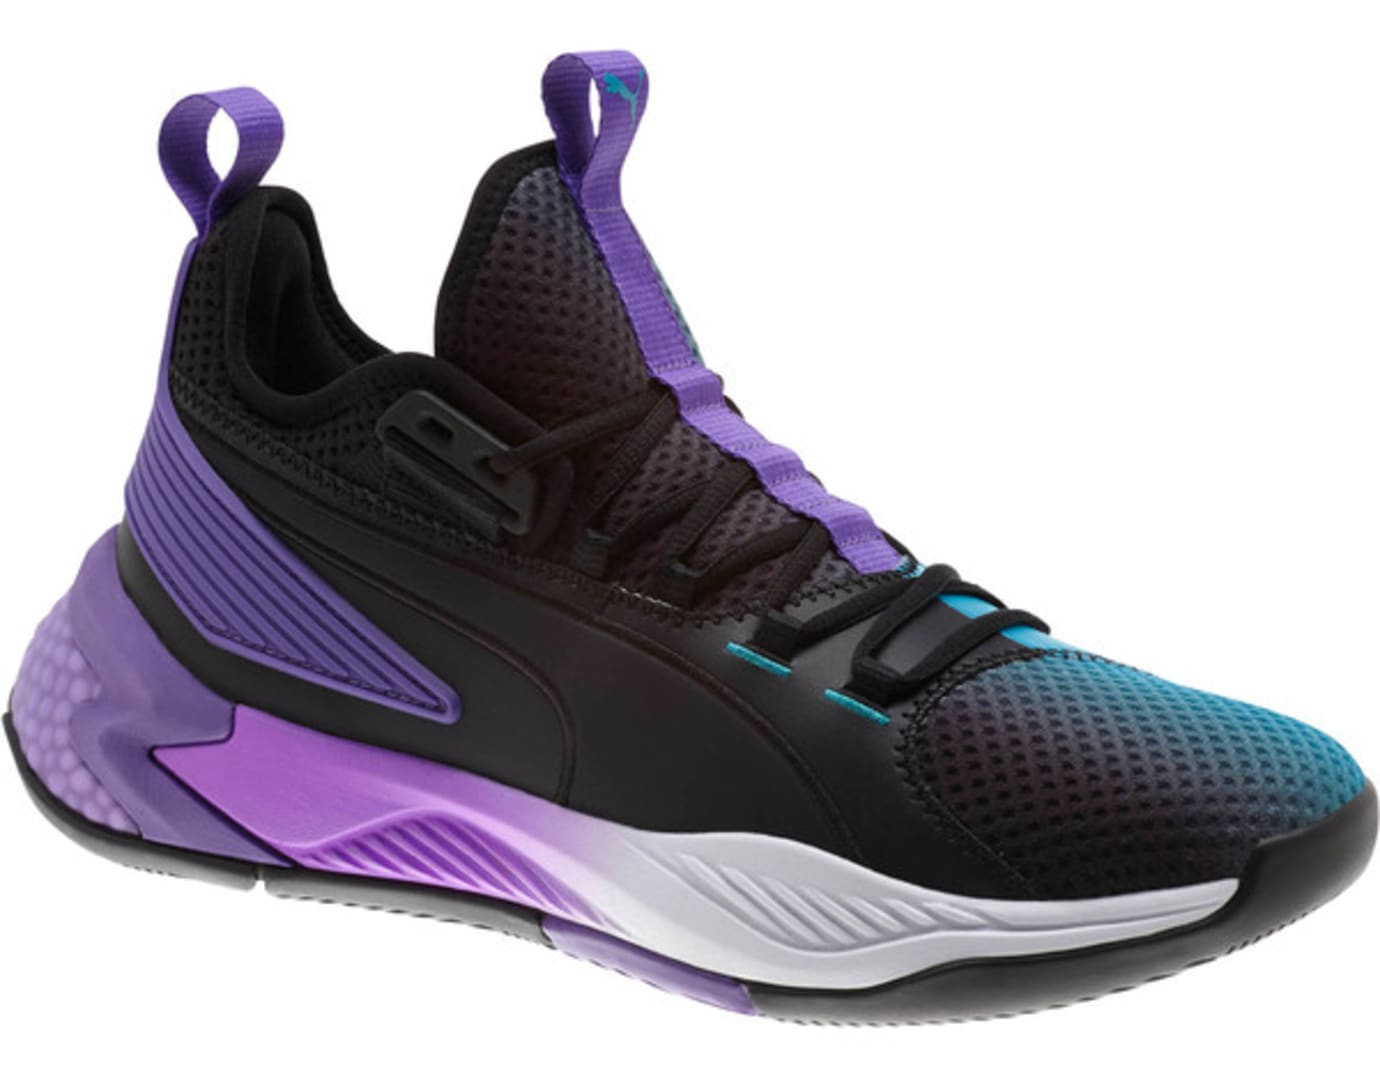 reputable site 17f03 58c67 Puma Basketball Uproar 'Charlotte' Release Date | Sole Collector